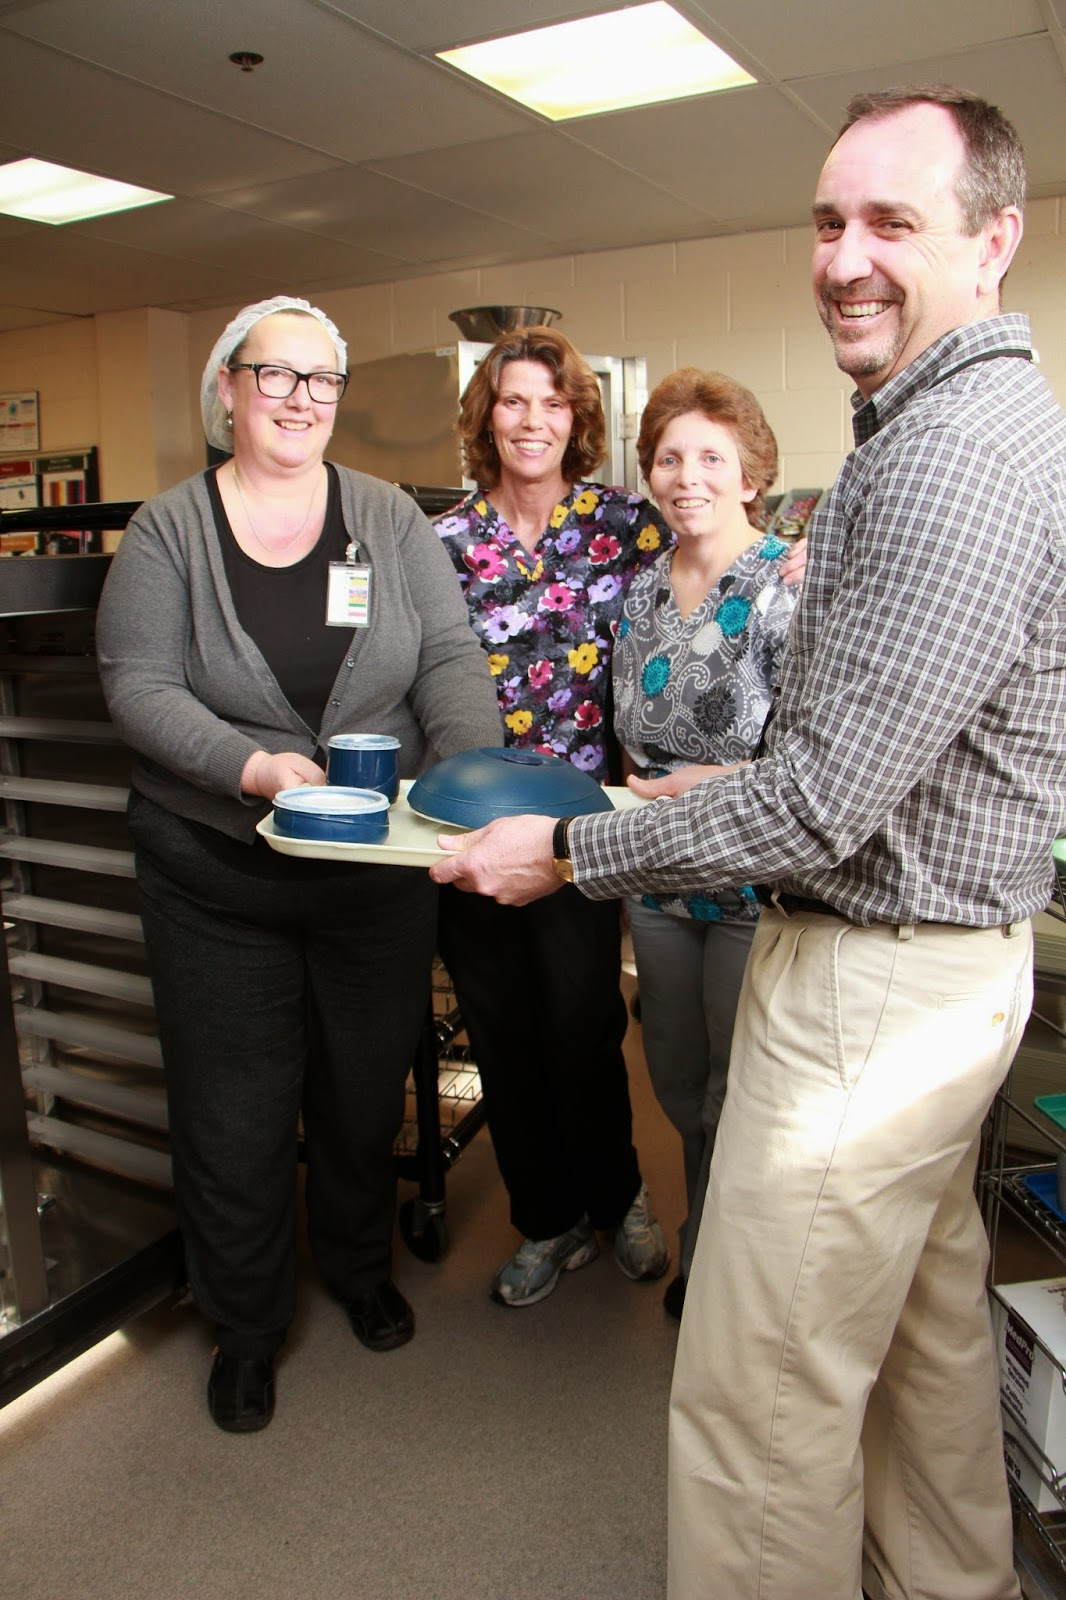 Hospital staff celebrate the food service improvements at South Muskoka Memorial Hospital Site